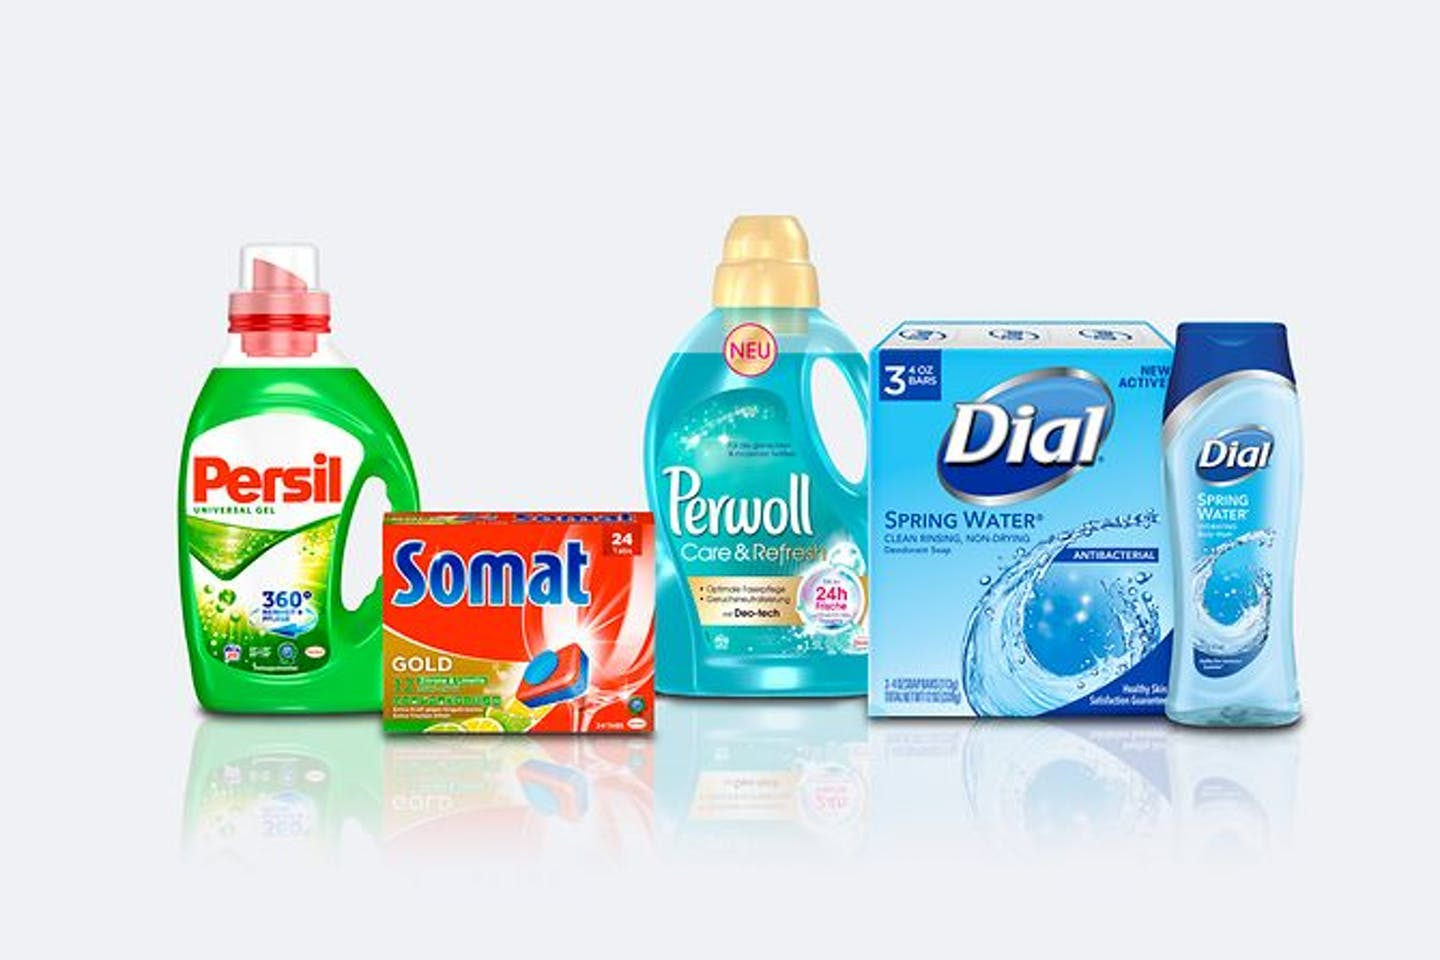 Some of Henkel's top laundry and home care brands. Image: Henkel